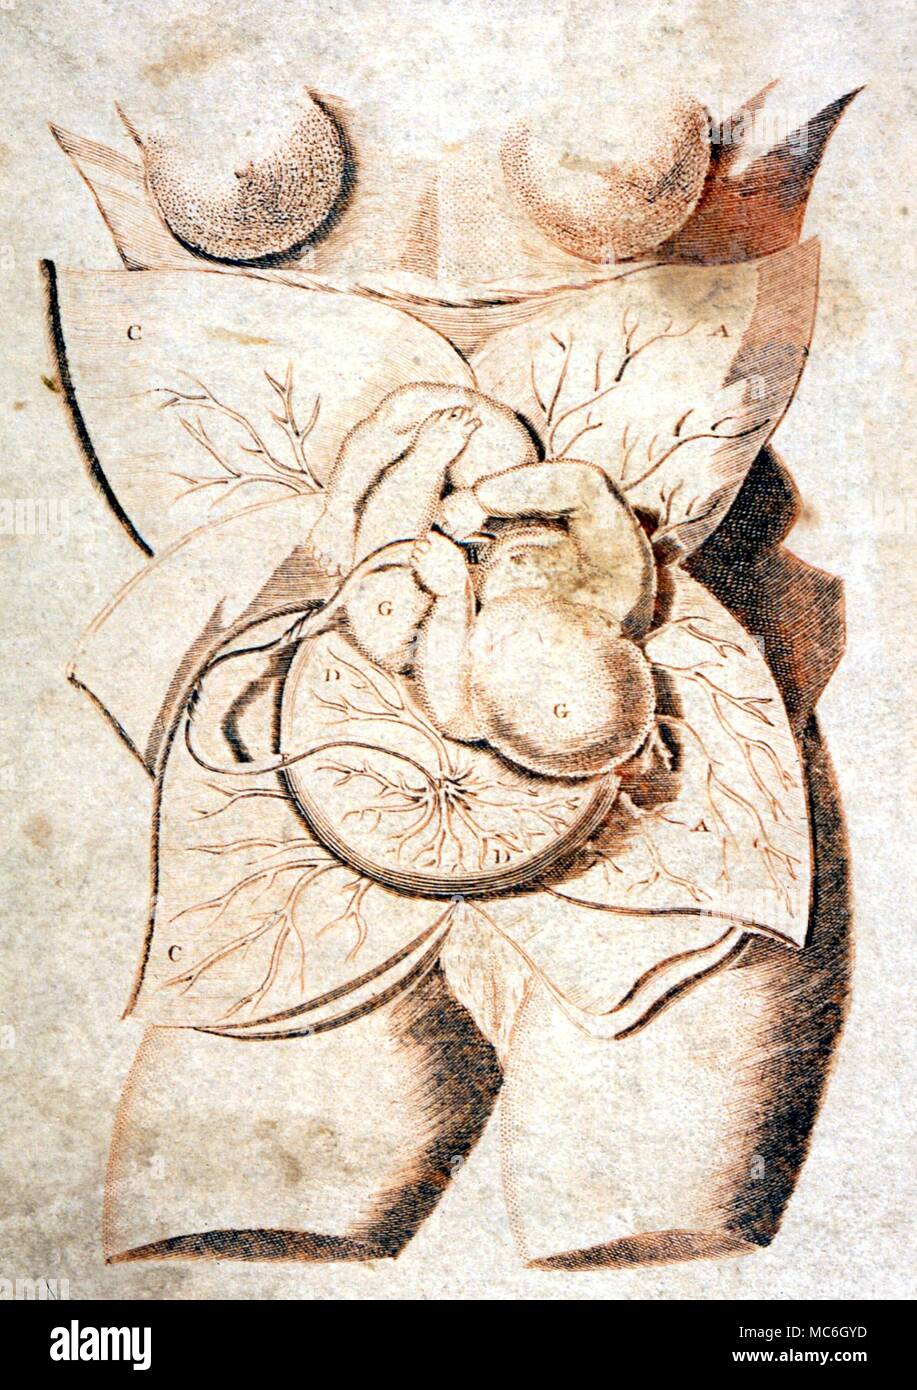 Female Womb With Embryo Plate From Culpepers English Physician And